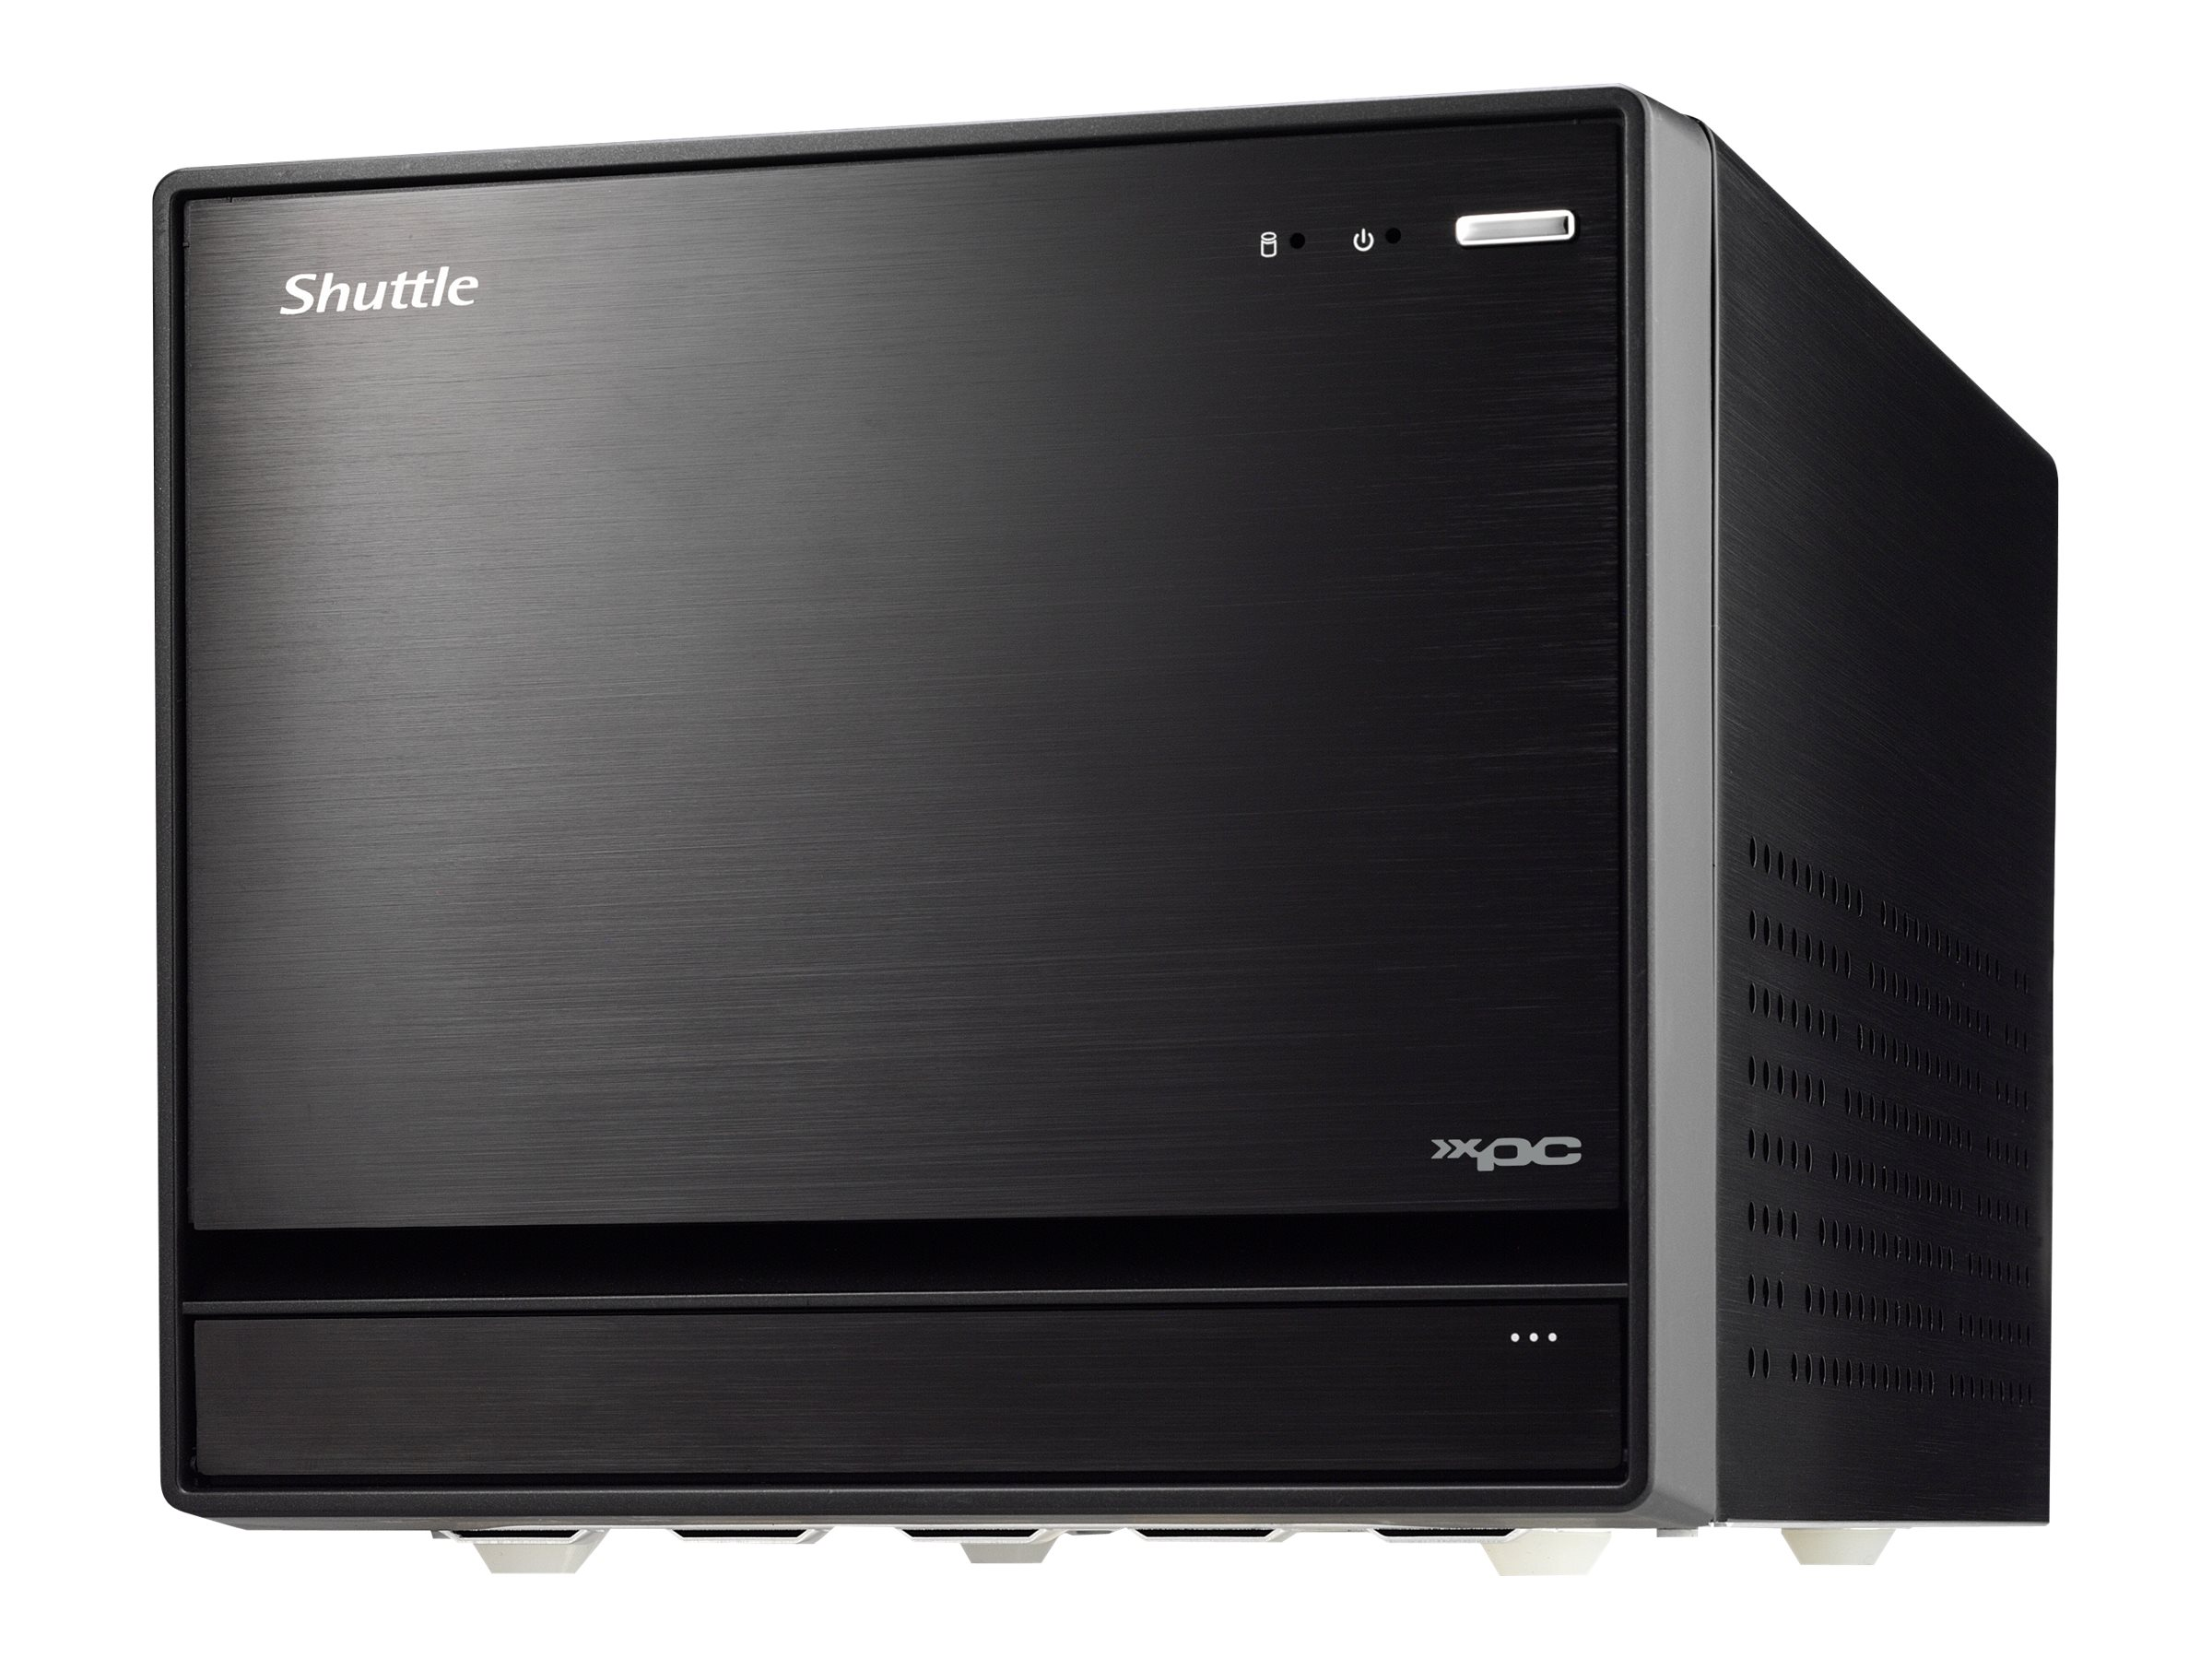 Shuttle XPC cube SZ170R8 - Barebone - Mini-PC - LGA1151 Socket - Intel Z170 - GigE